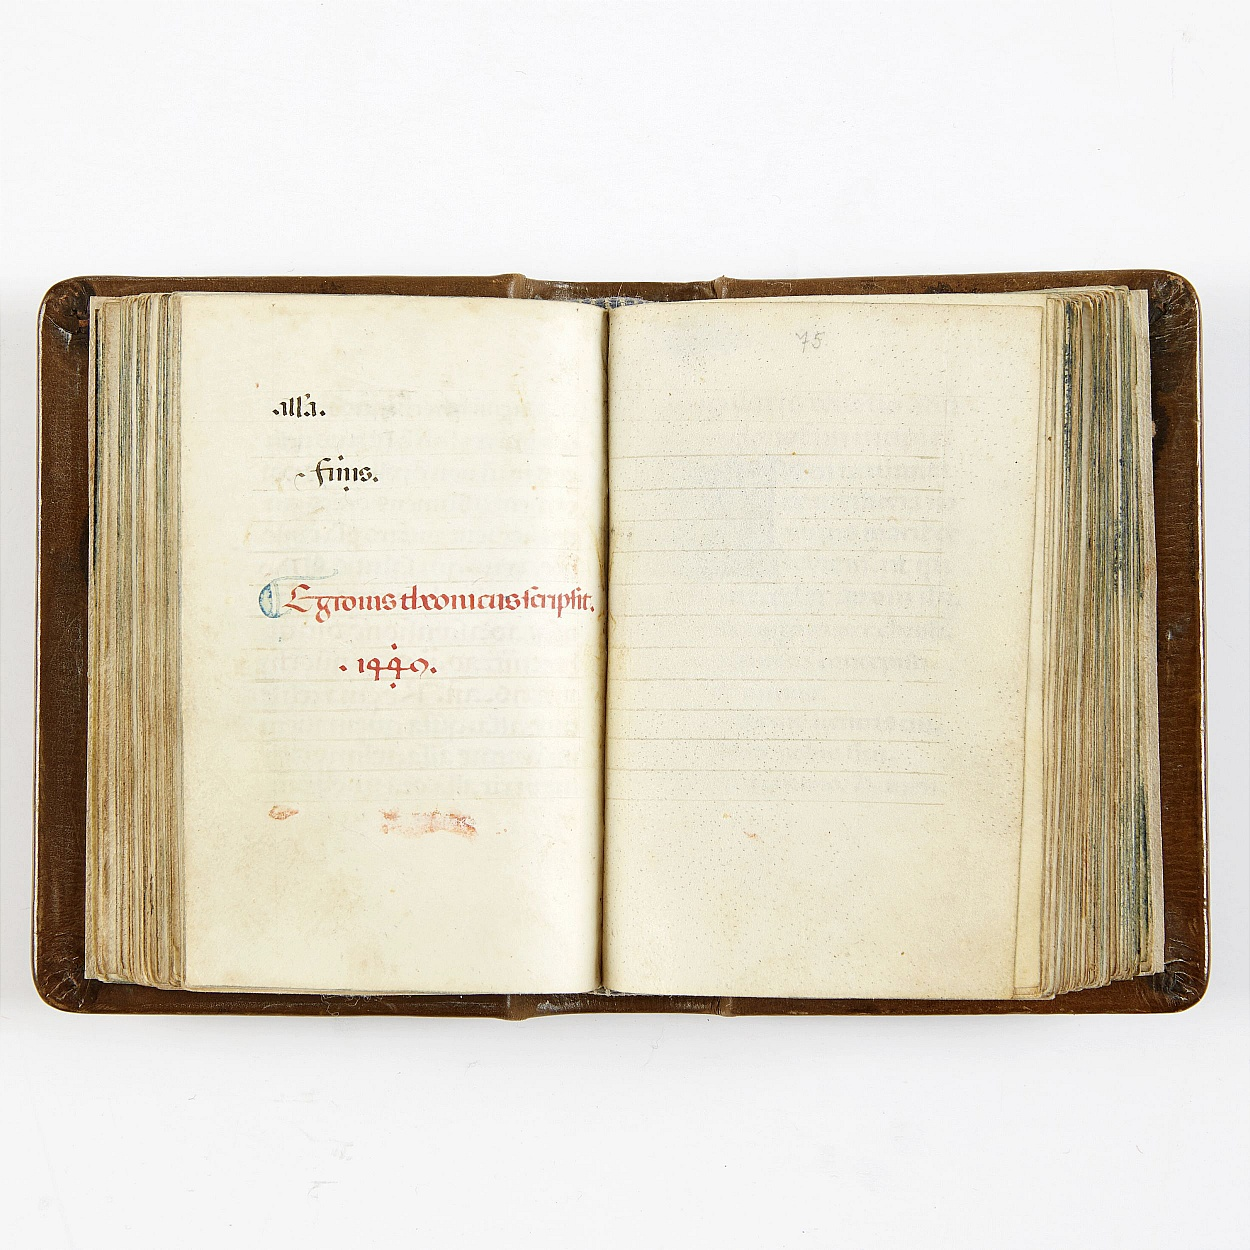 Book of Hours dated 1449 probably Florence